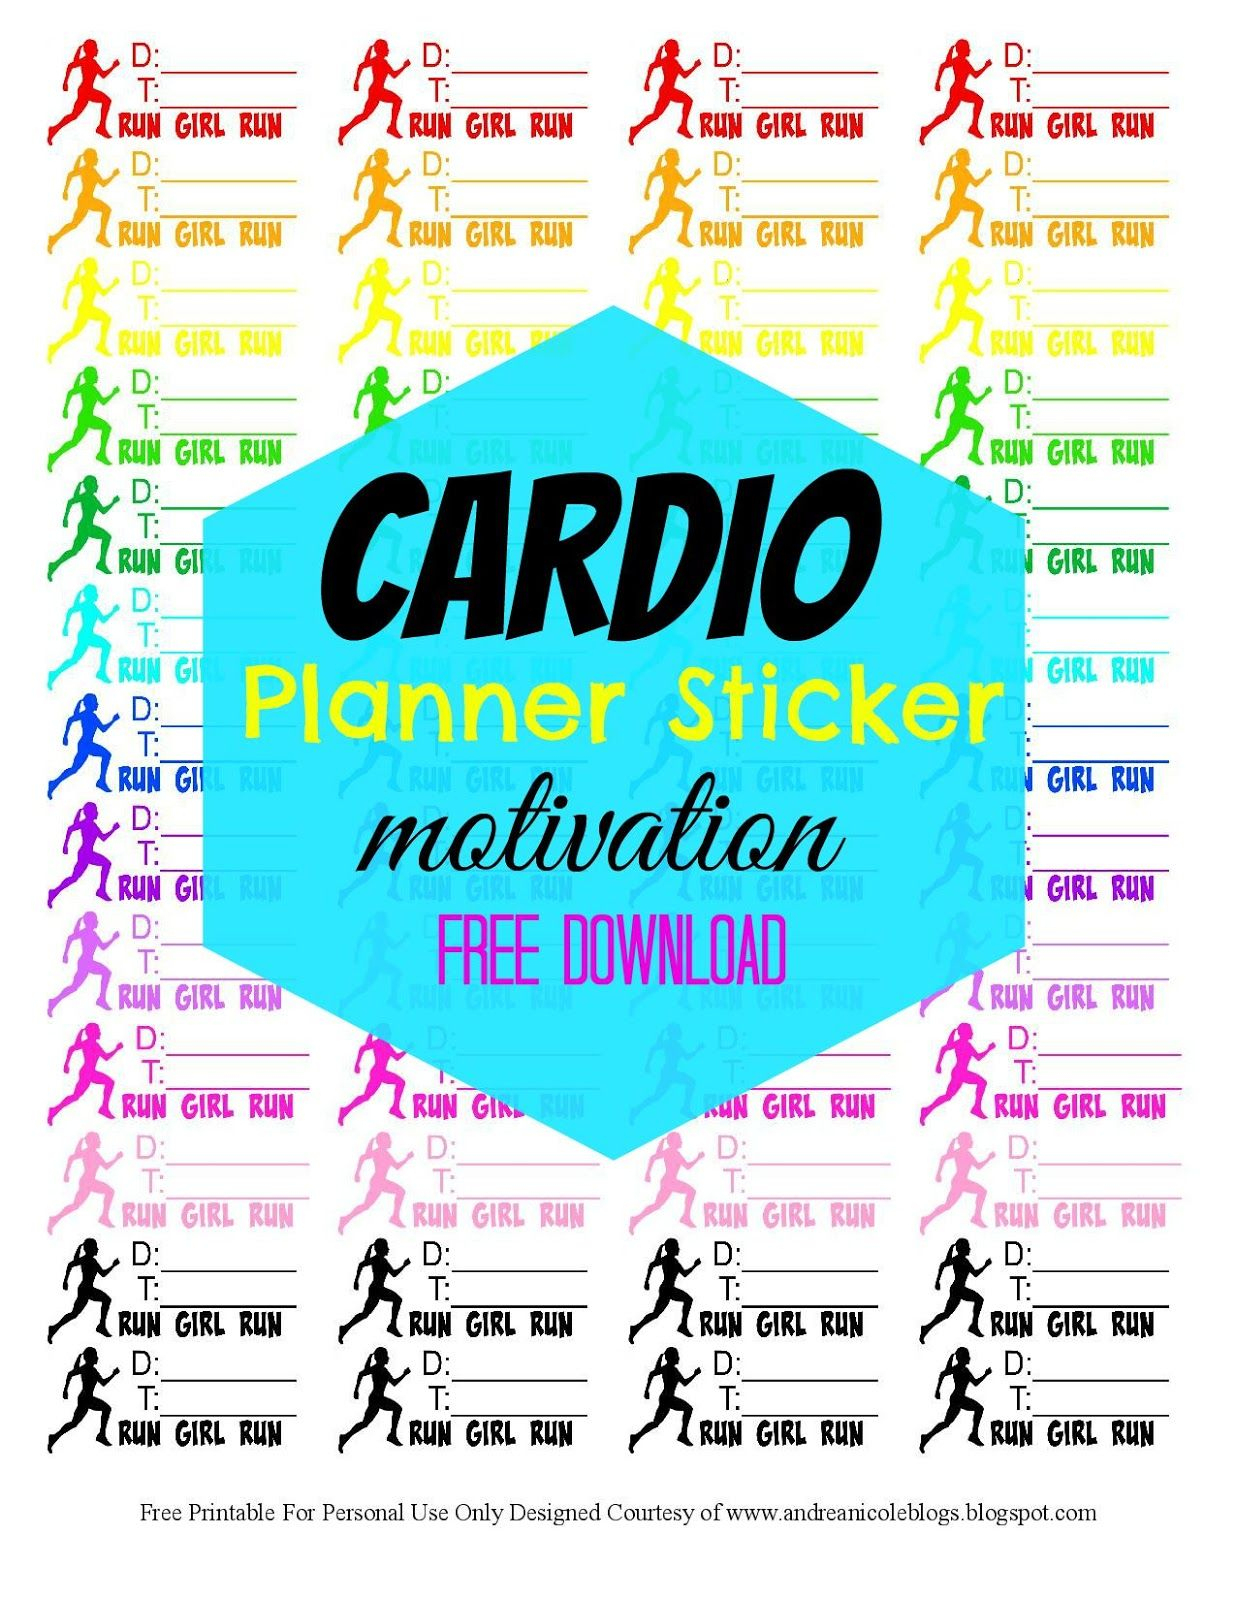 Free Printable Fitness Planner Stickers Andrea Nicole Blogs | Free - Free Printable Fitness Planner